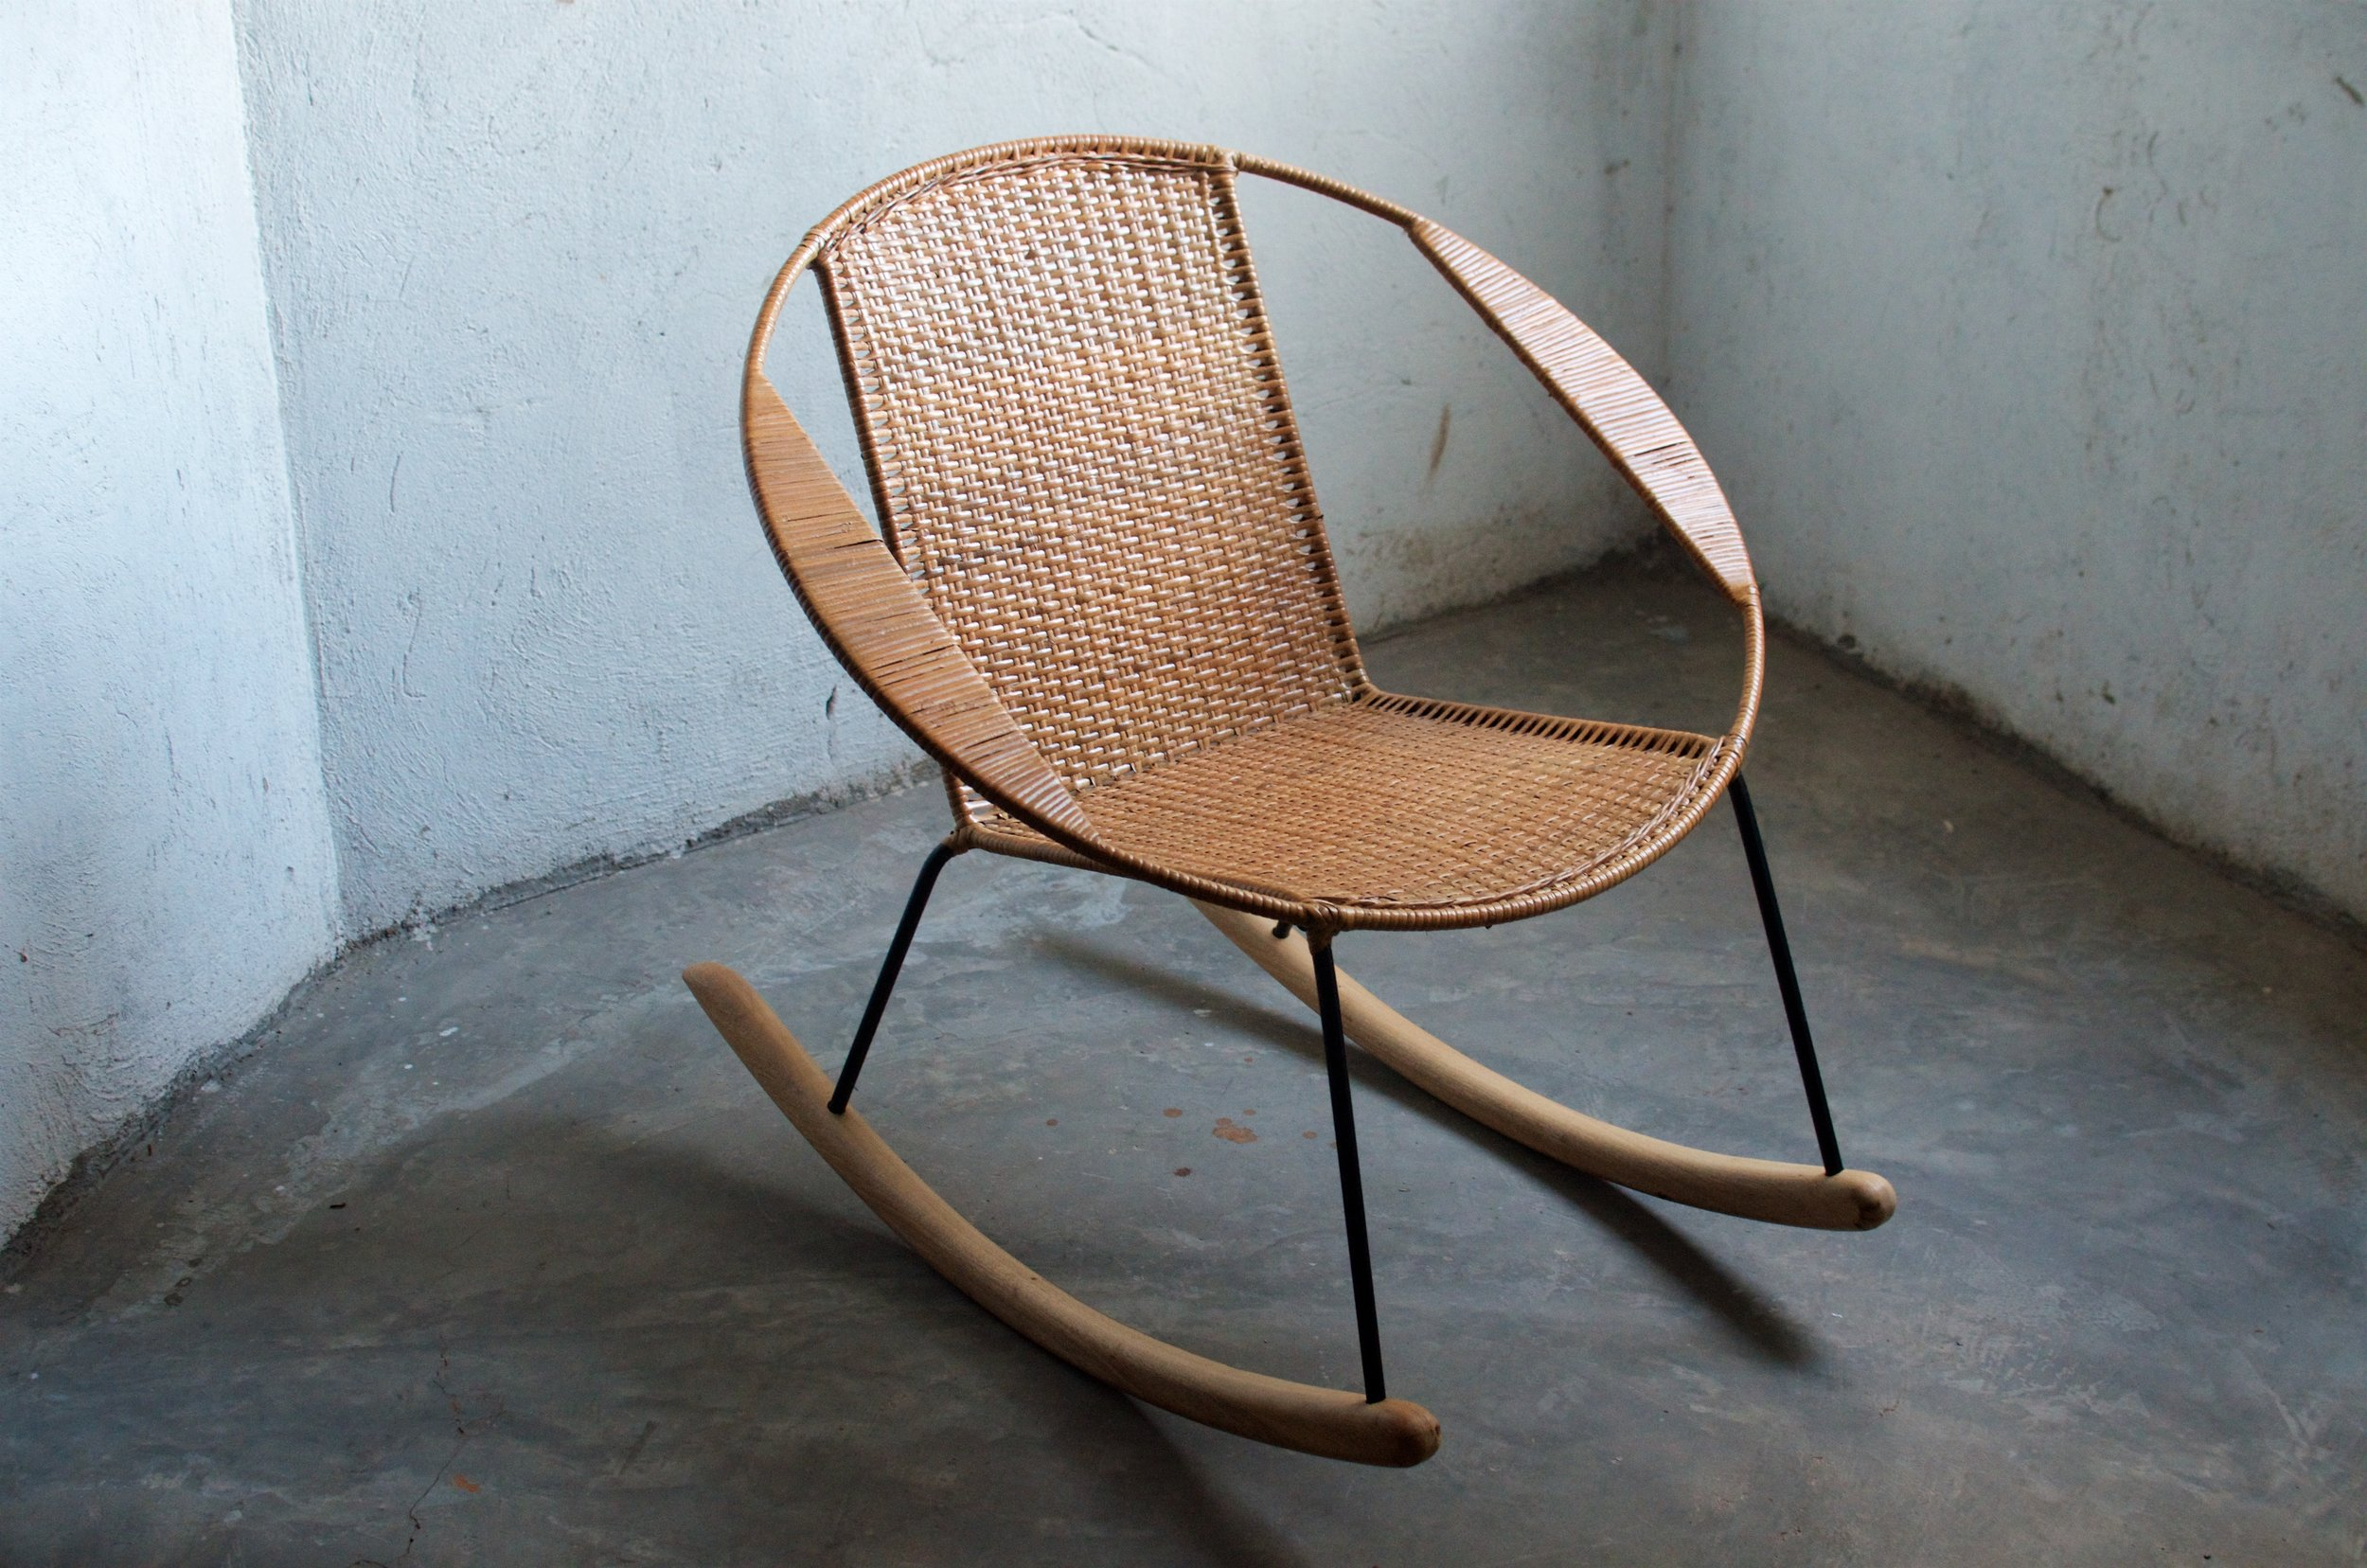 Tucurinca rocking chair, 495 euro.